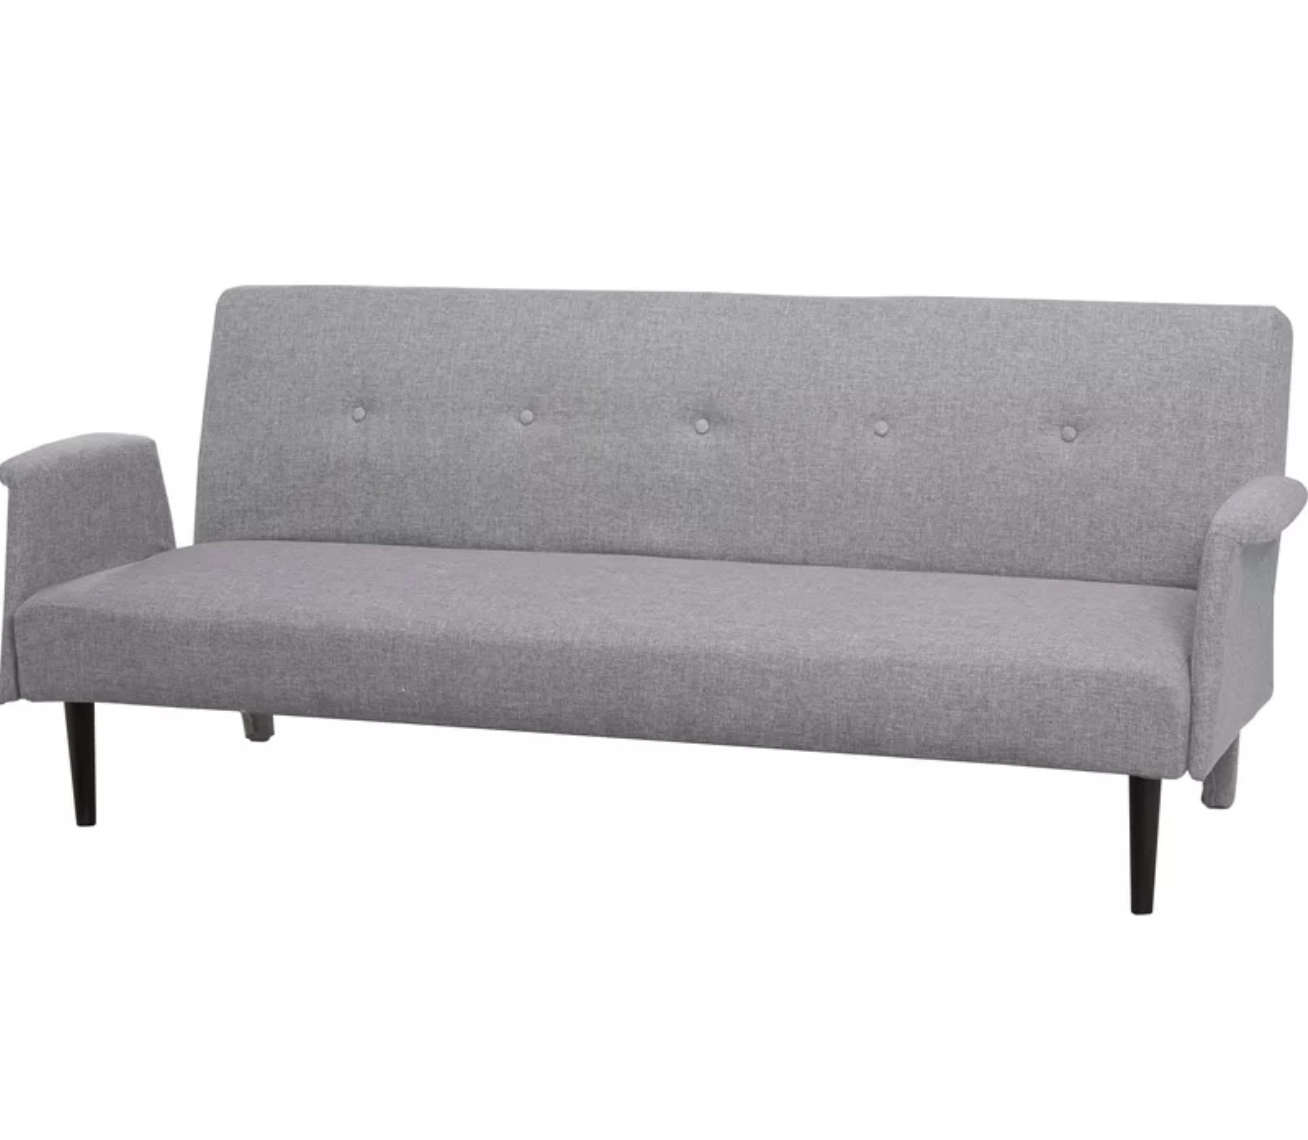 thora sleeper sofa - $263.99  modern look and i think you can fold it so you can lie down on it. not sure if it's the most comfortable.